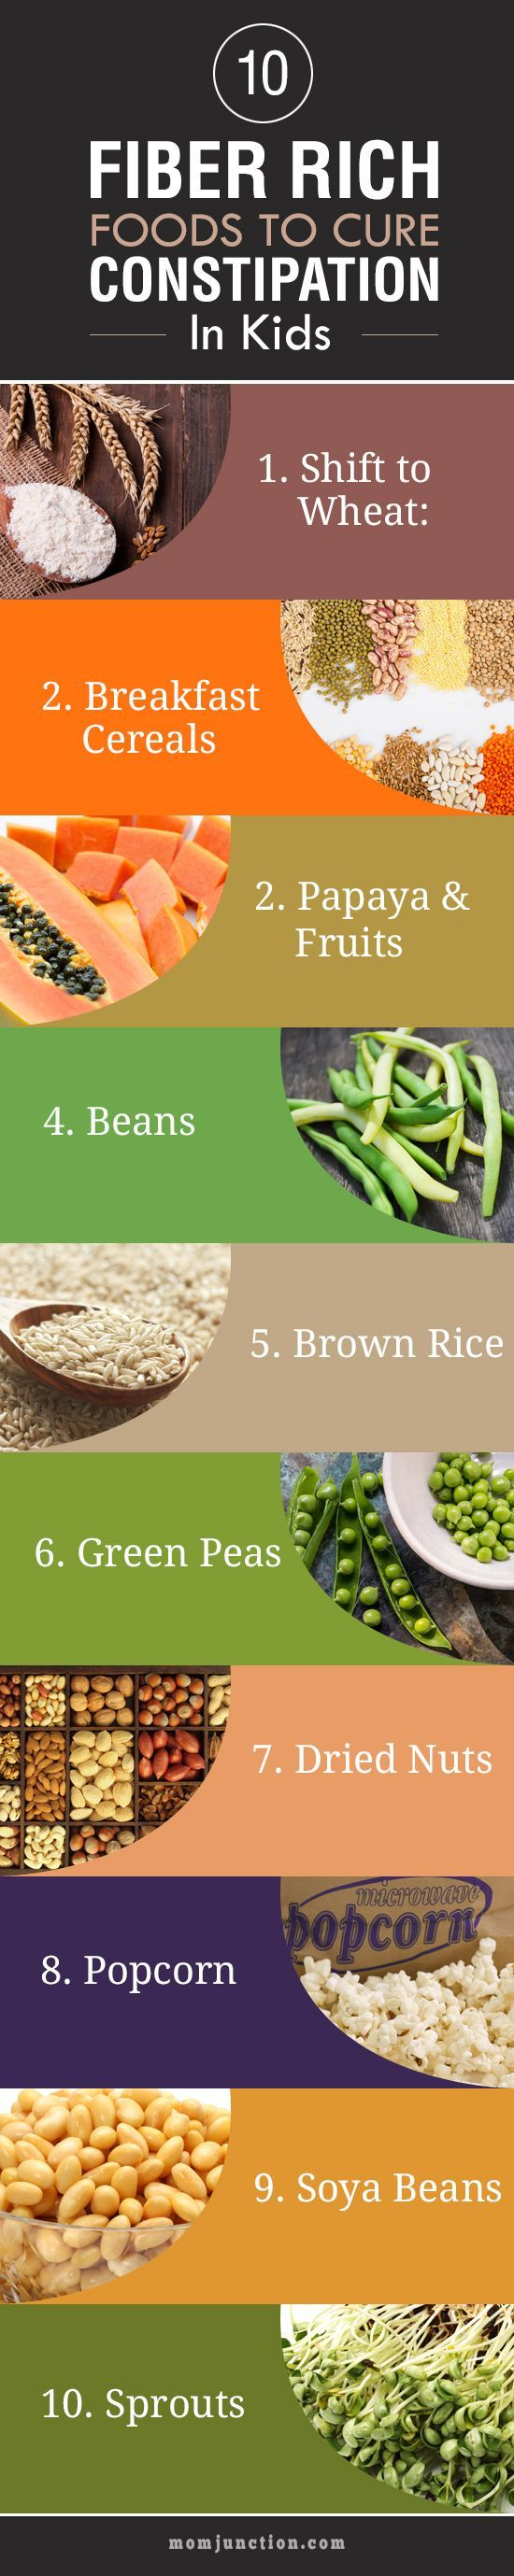 Best Foods To Prevent Constipation In Toddlers Foodfash Co